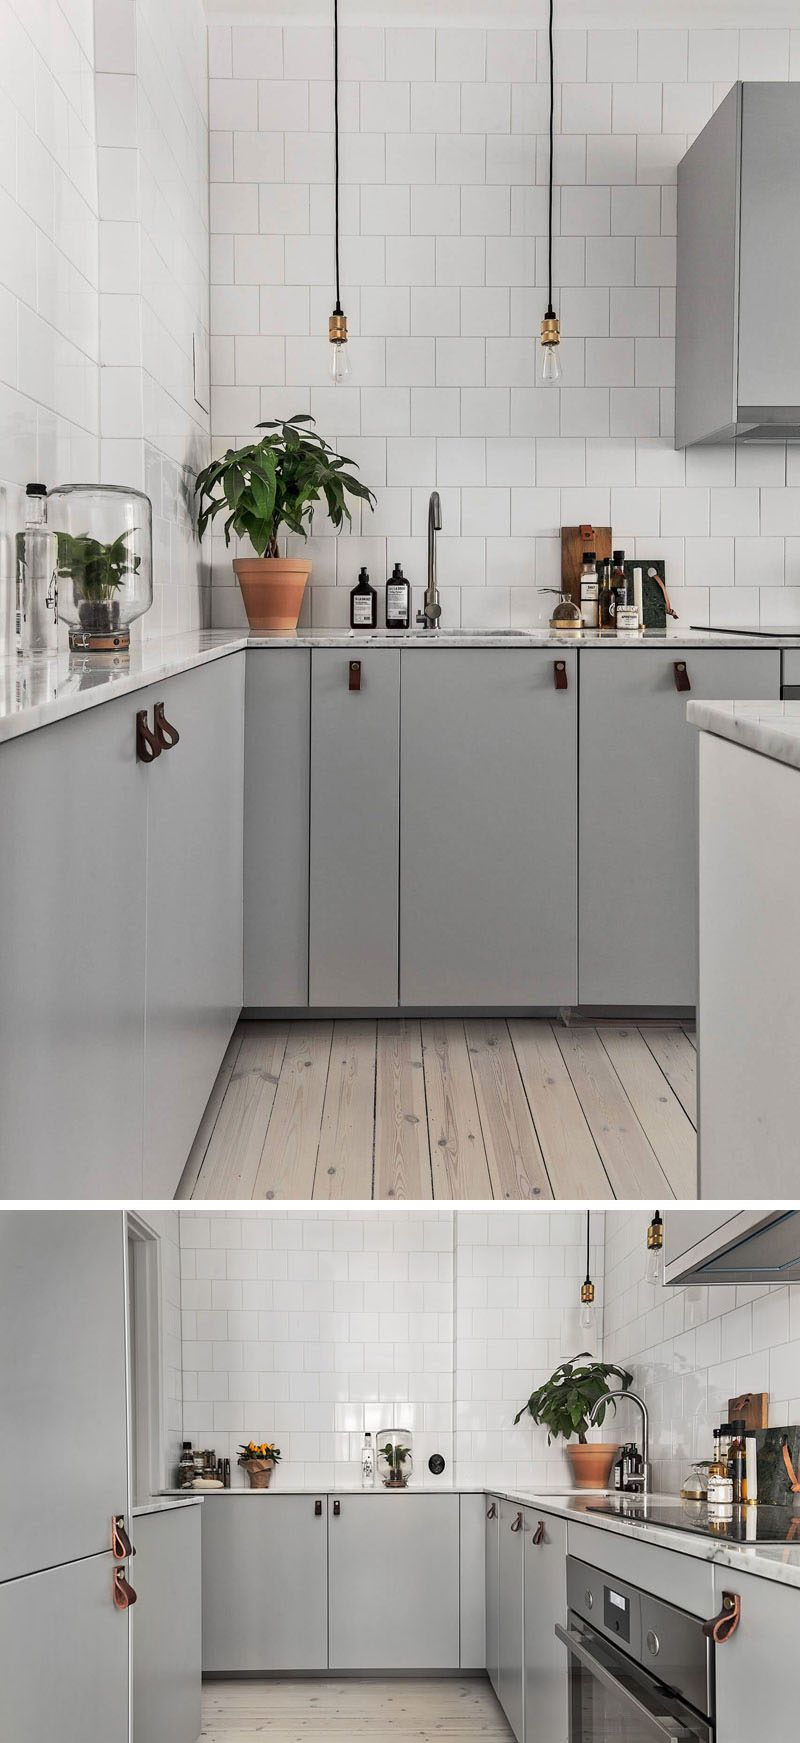 12 Examples Of Sophisticated Gray Kitchen Cabinets Minimalist Gray Cabinets Have Been Paired With White Tiles A Kitchen Design Modern Kitchen Grey Kitchens